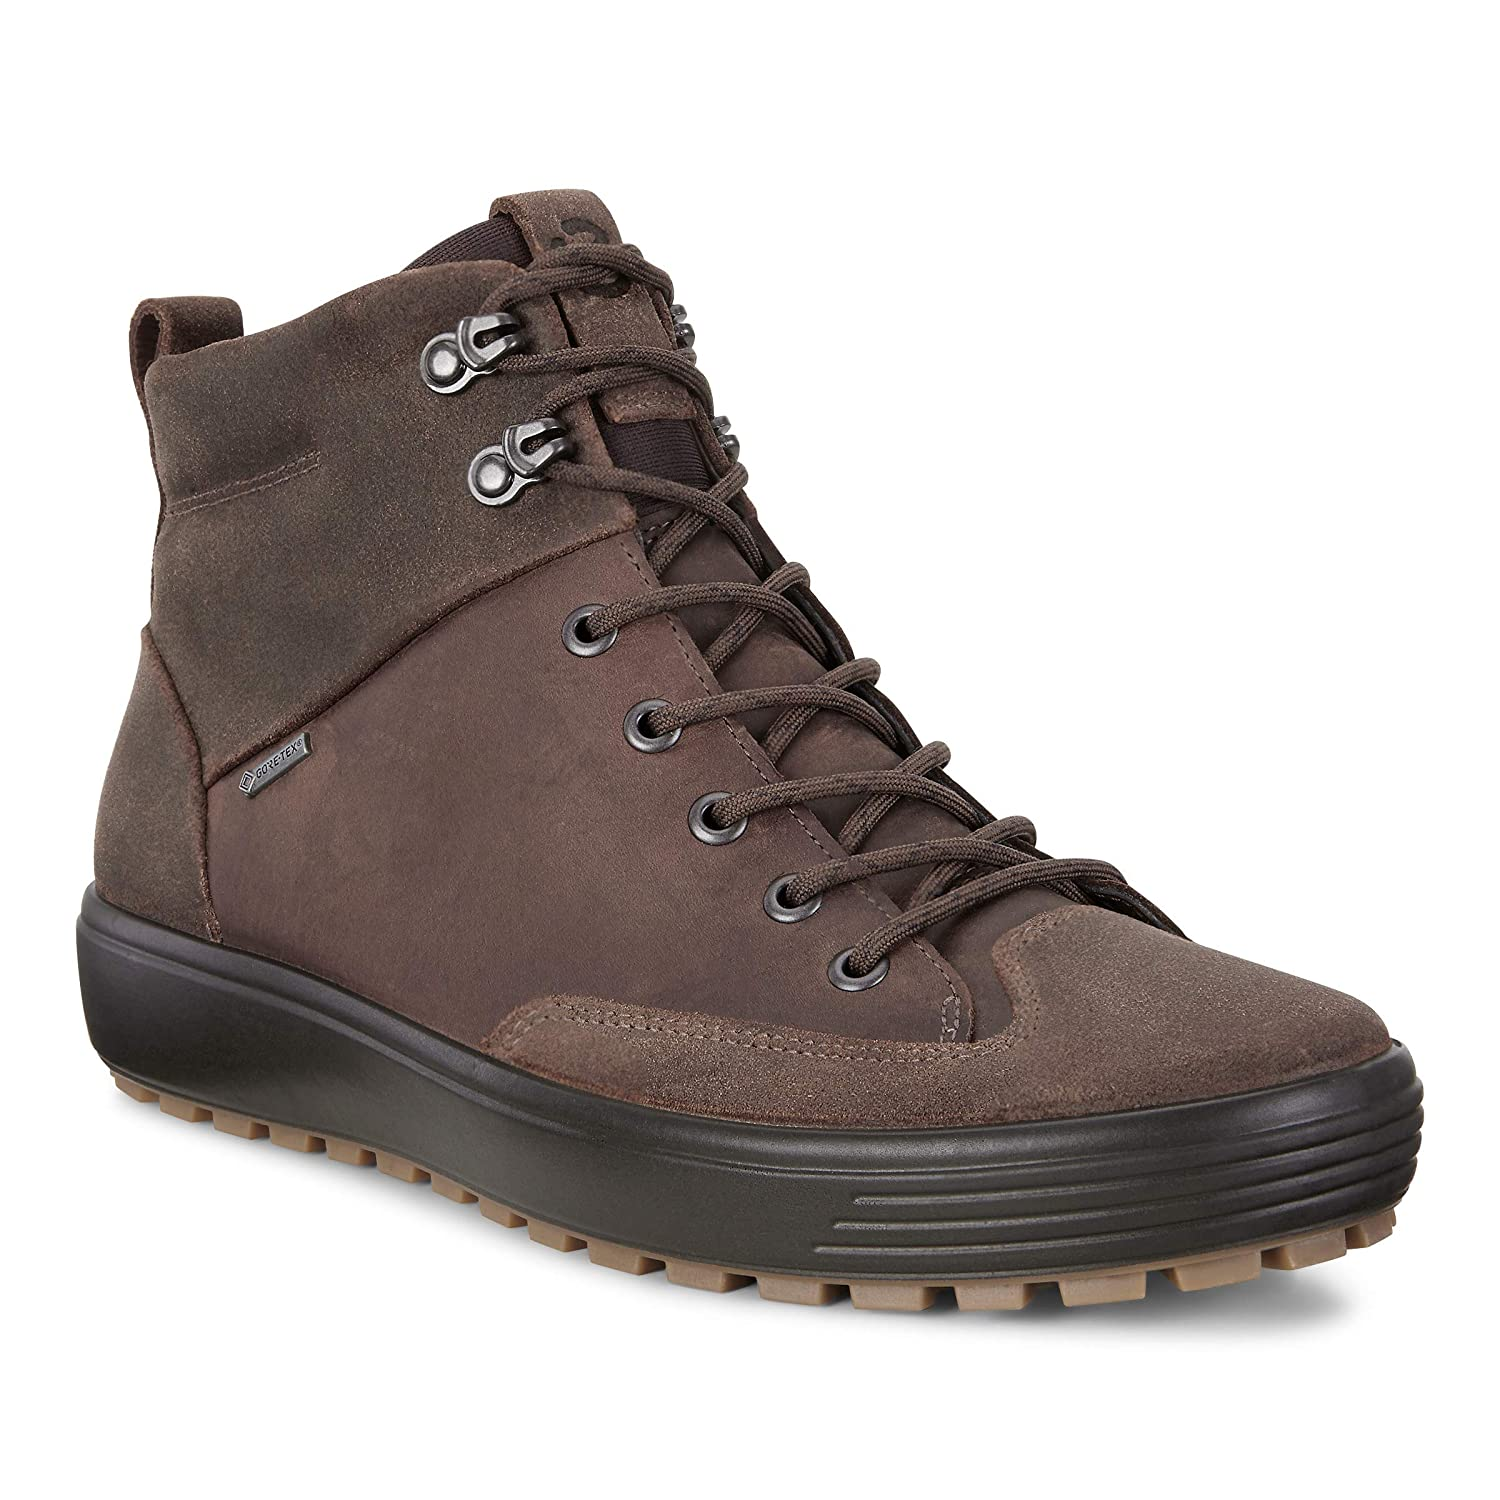 ECCO Mens Soft 7 Tred GTX Boot Rainwear